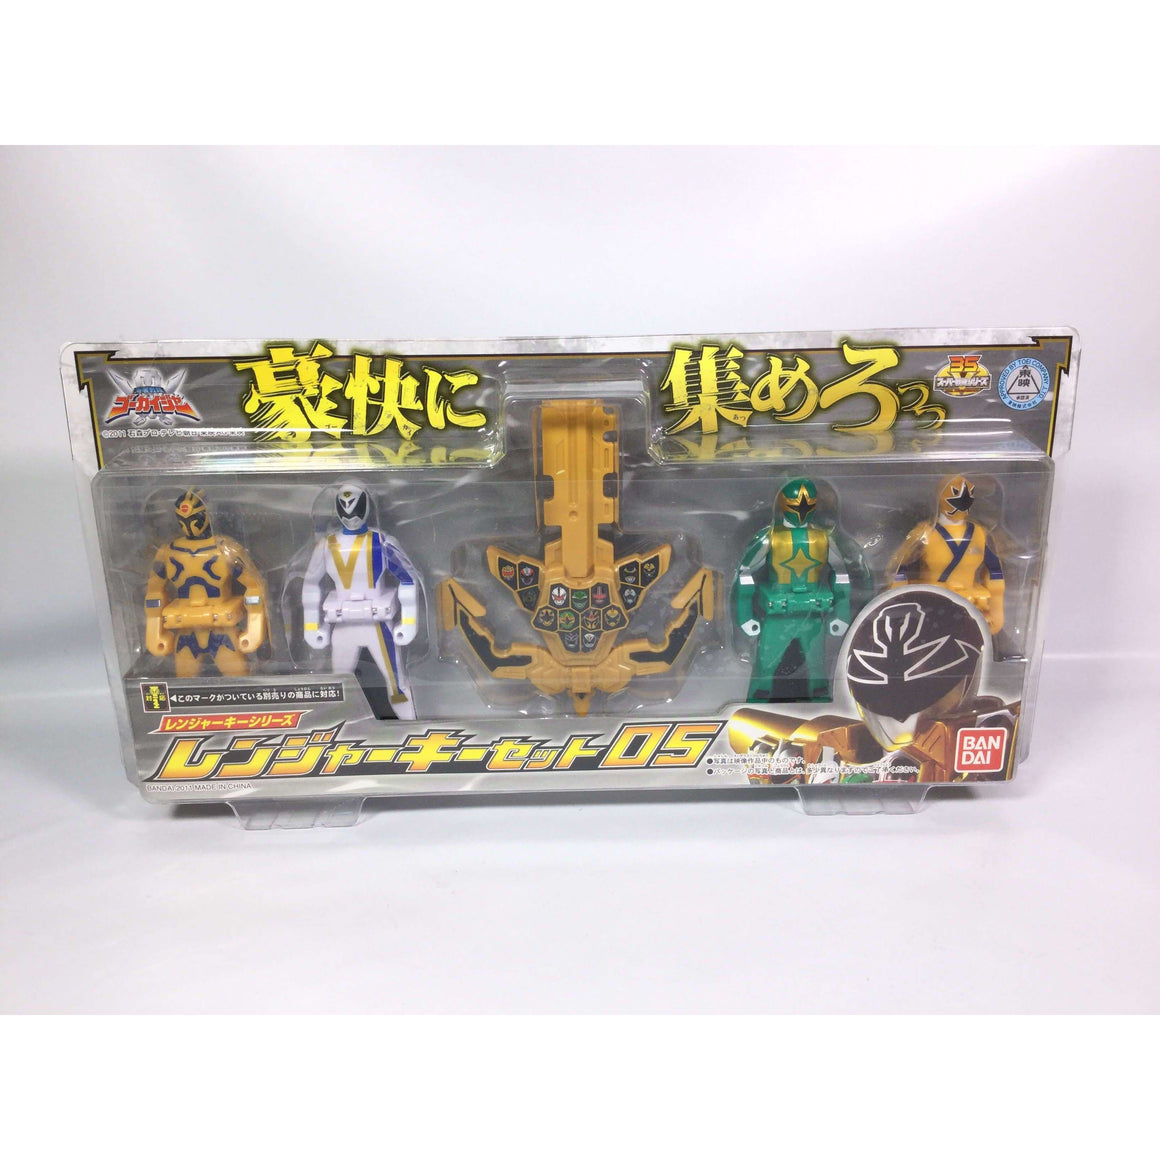 CSTOYS INTERNATIONAL:[BOXED] Kaizoku Sentai Gokaiger: Ranger Key Set 05